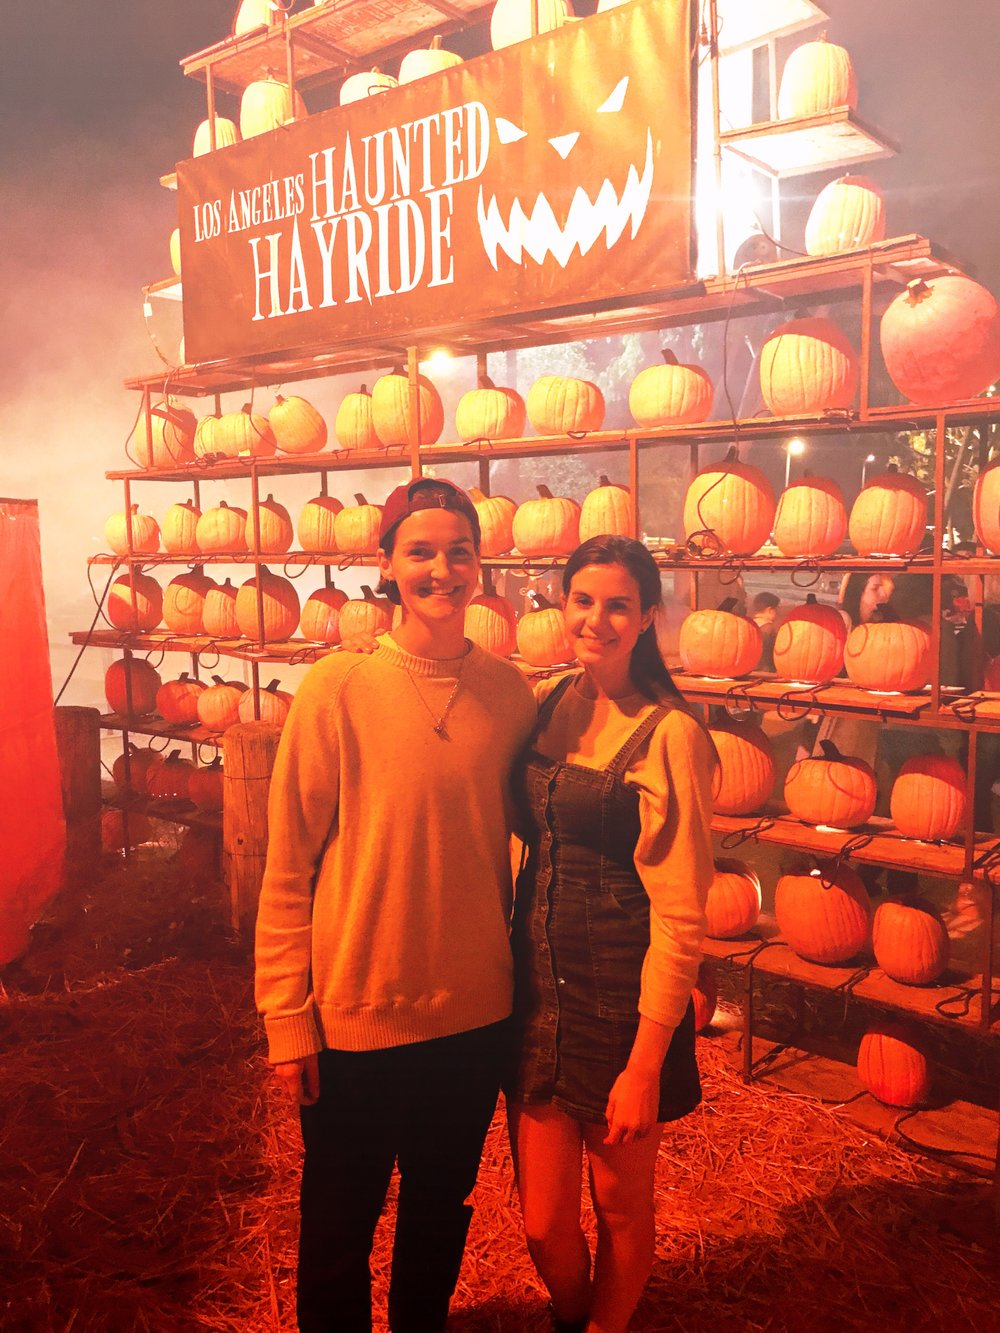 LA_Haunted_Hayride